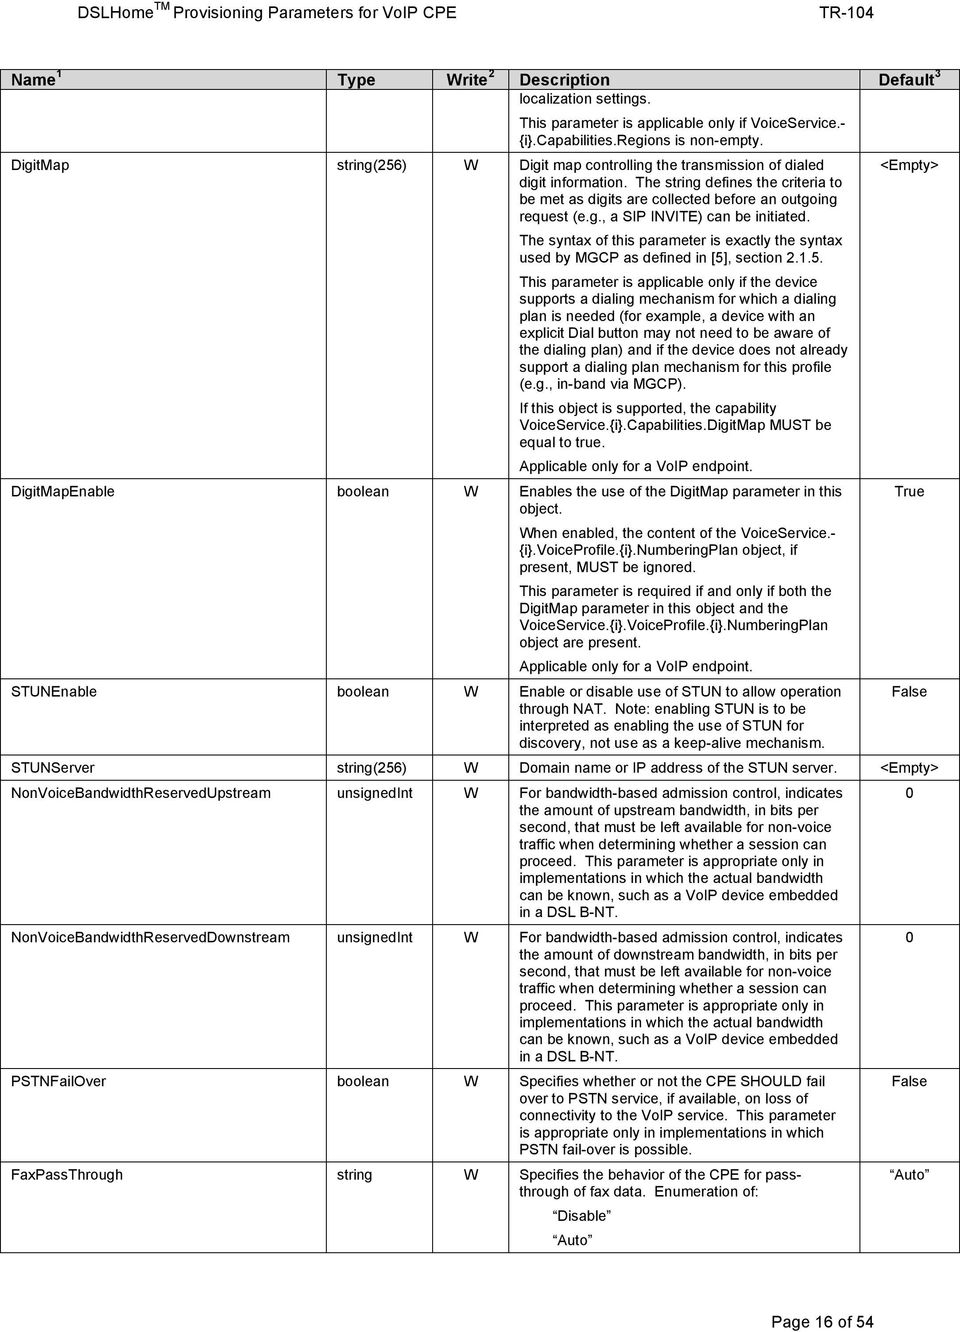 The syntax of this parameter is exactly the syntax used by MGCP as defined in [5]